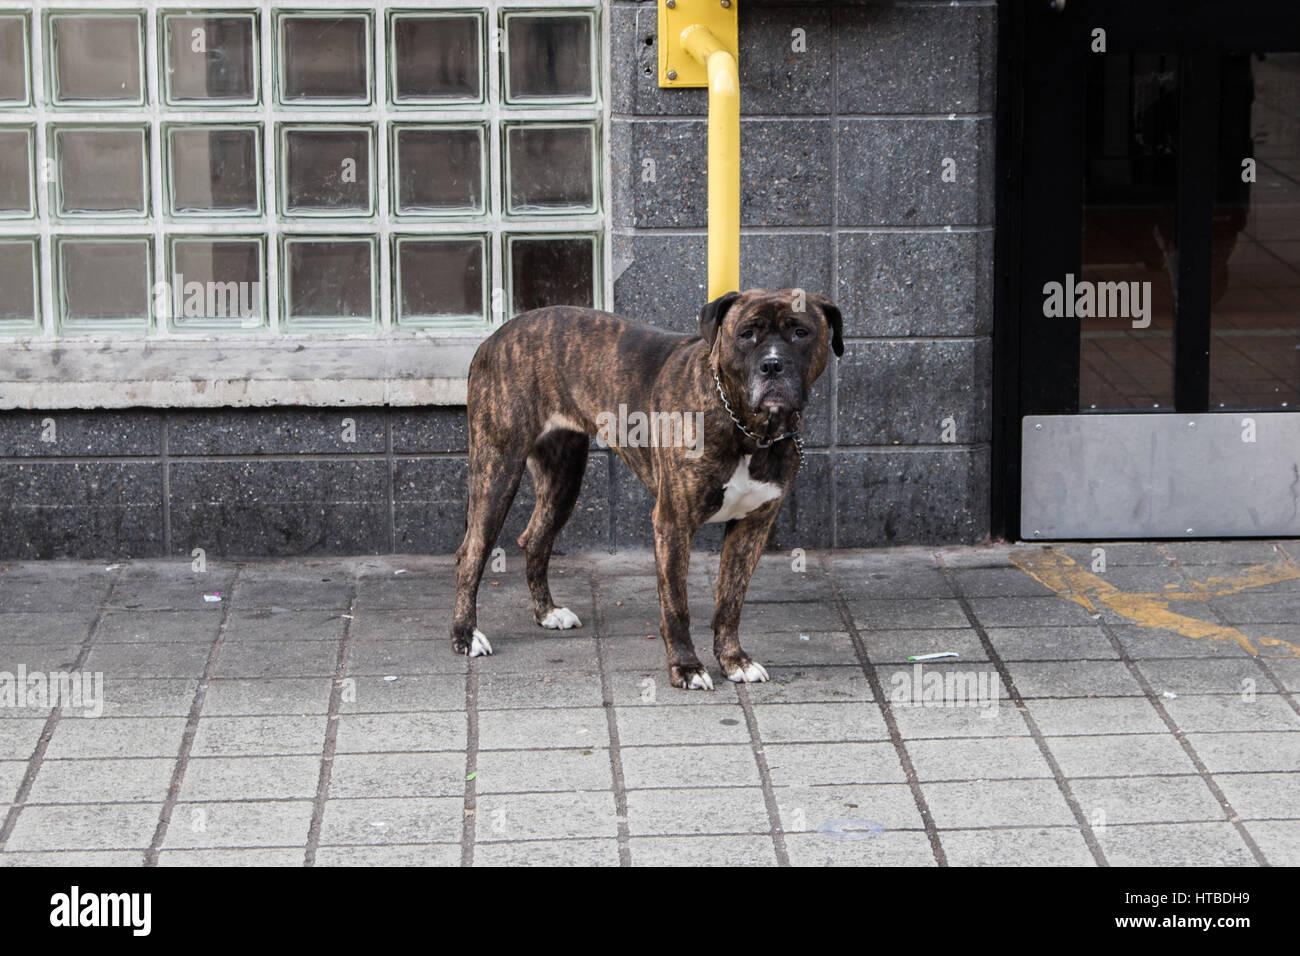 Black and brown dog looking at me - Stock Image